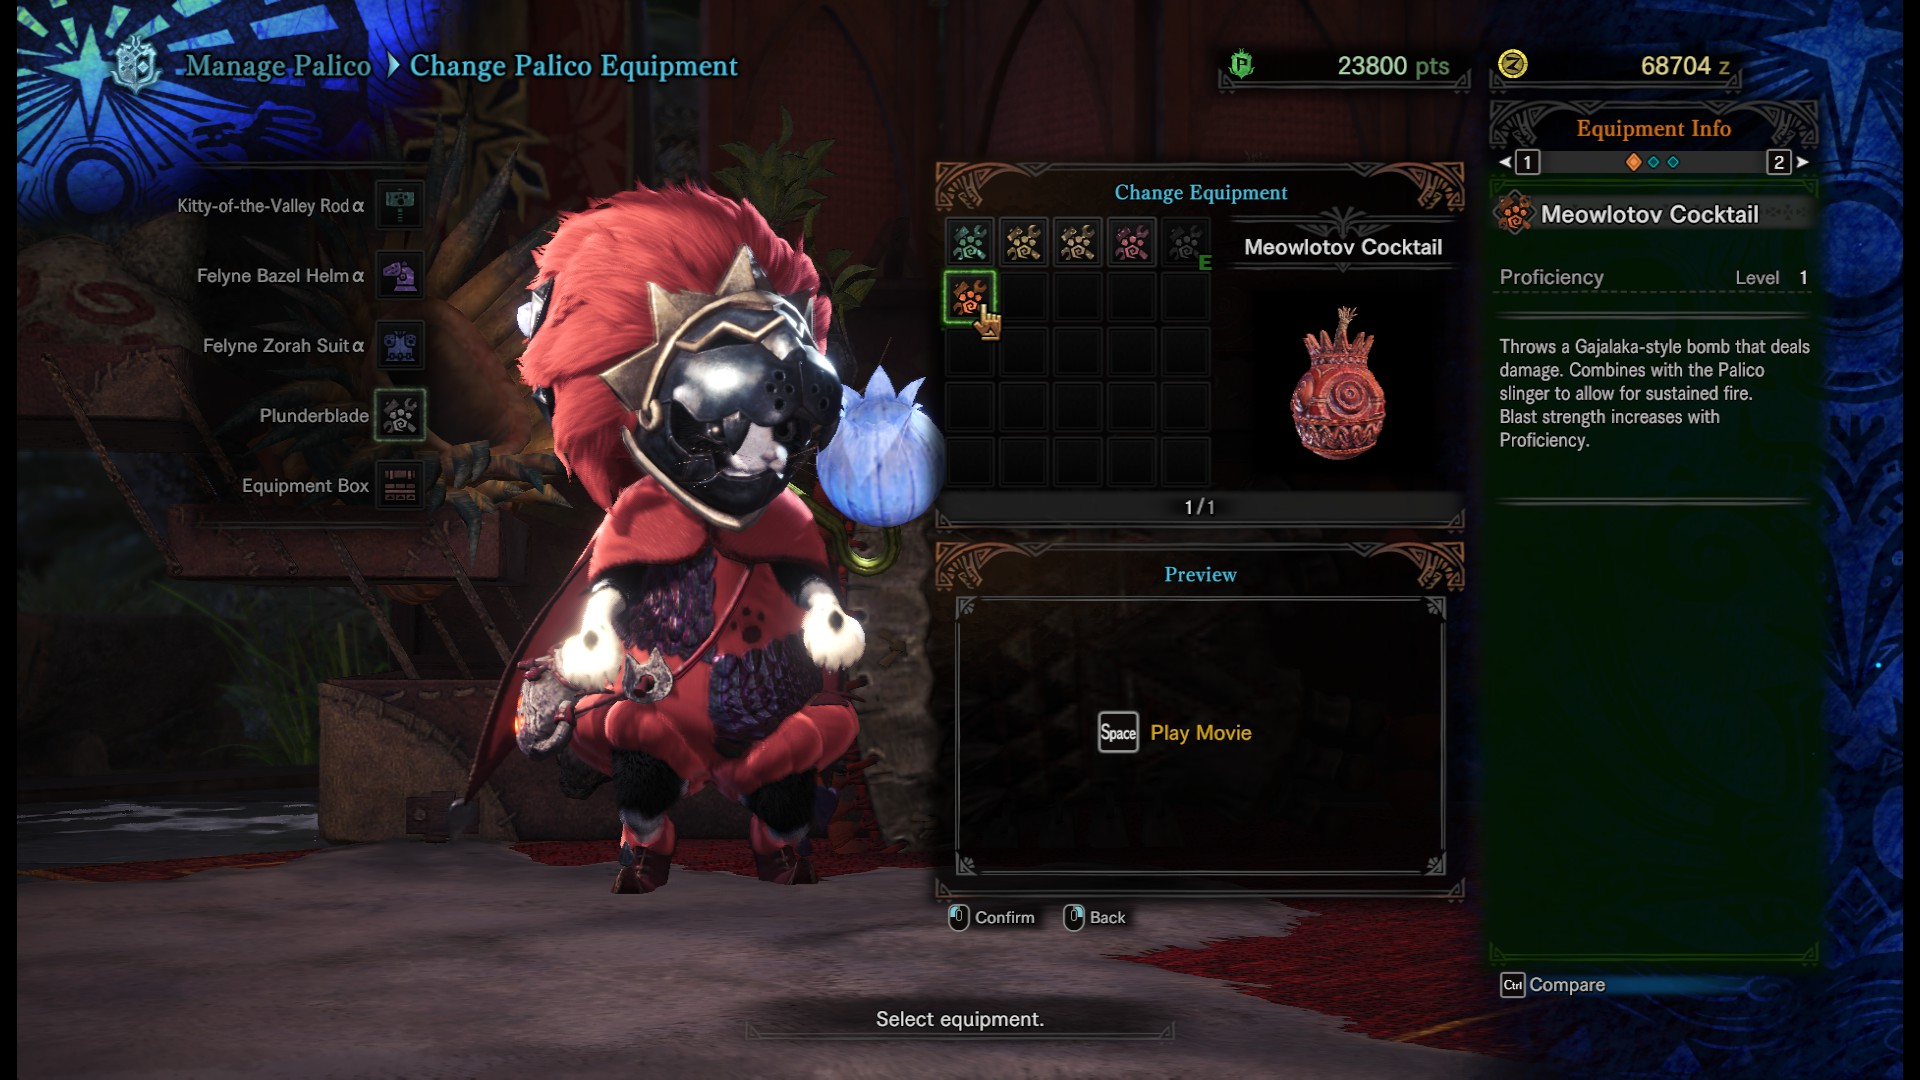 Steam Community :: Guide :: Getting New Palico Gadgets Guide